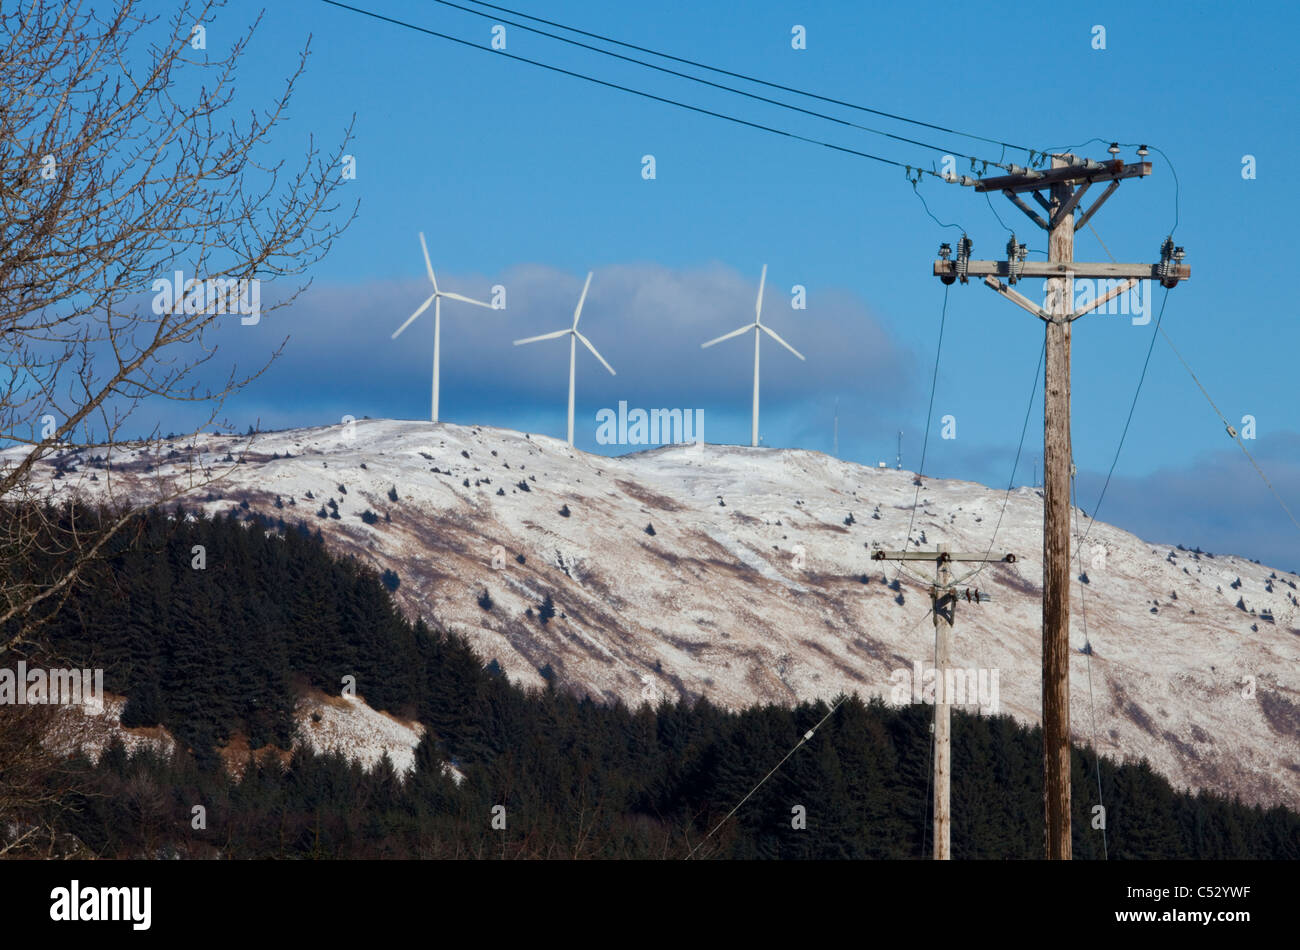 Pillar Mountain Wind Project wind turbines, Kodiak Island with electric poles and lines in the foreground, Alaska Stock Photo